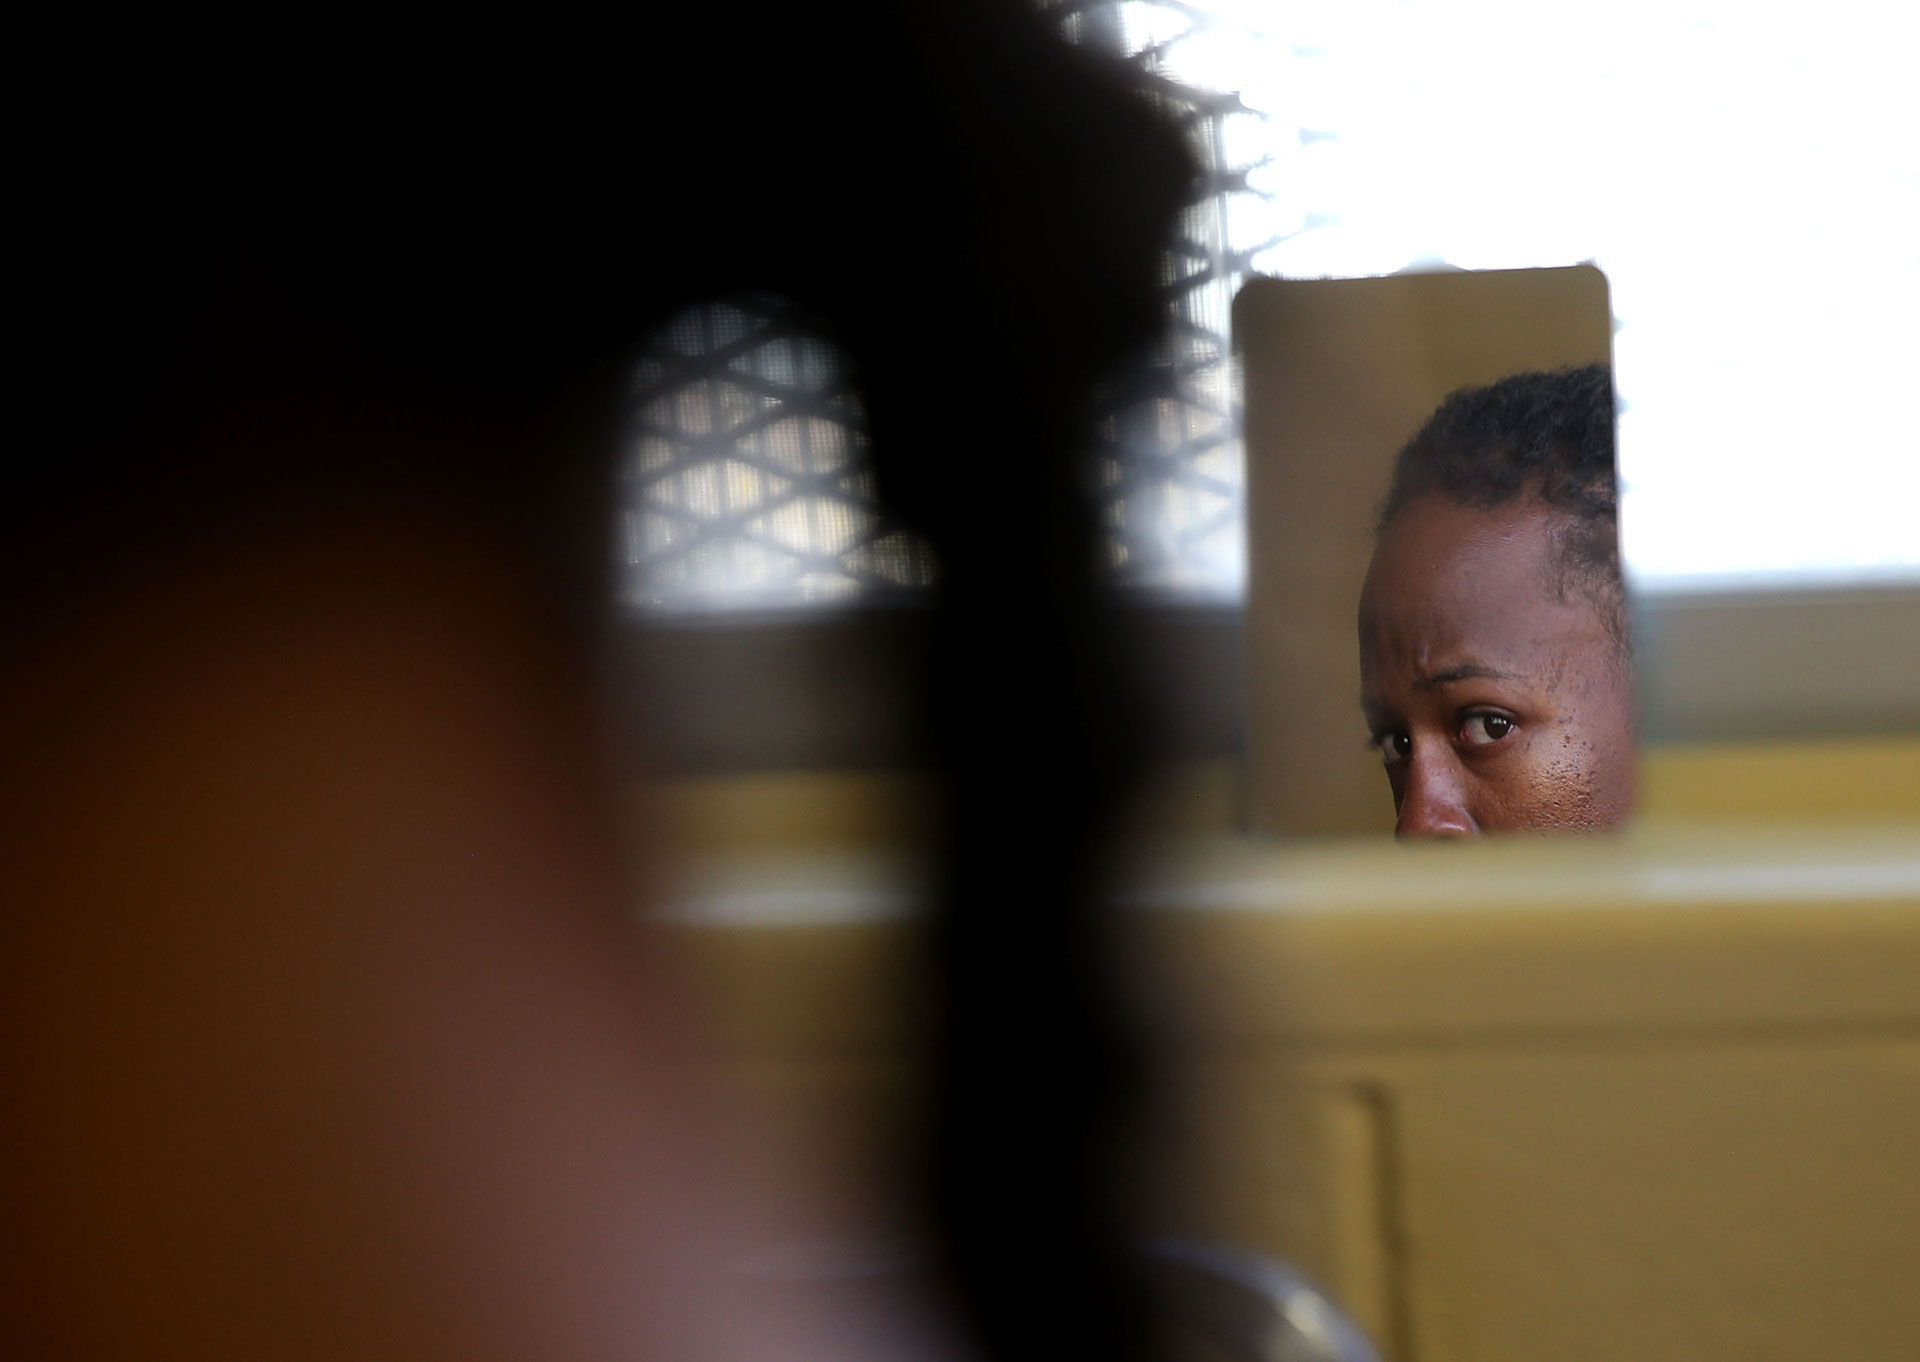 A San Quentin State Prison inmate looks in a mirror.